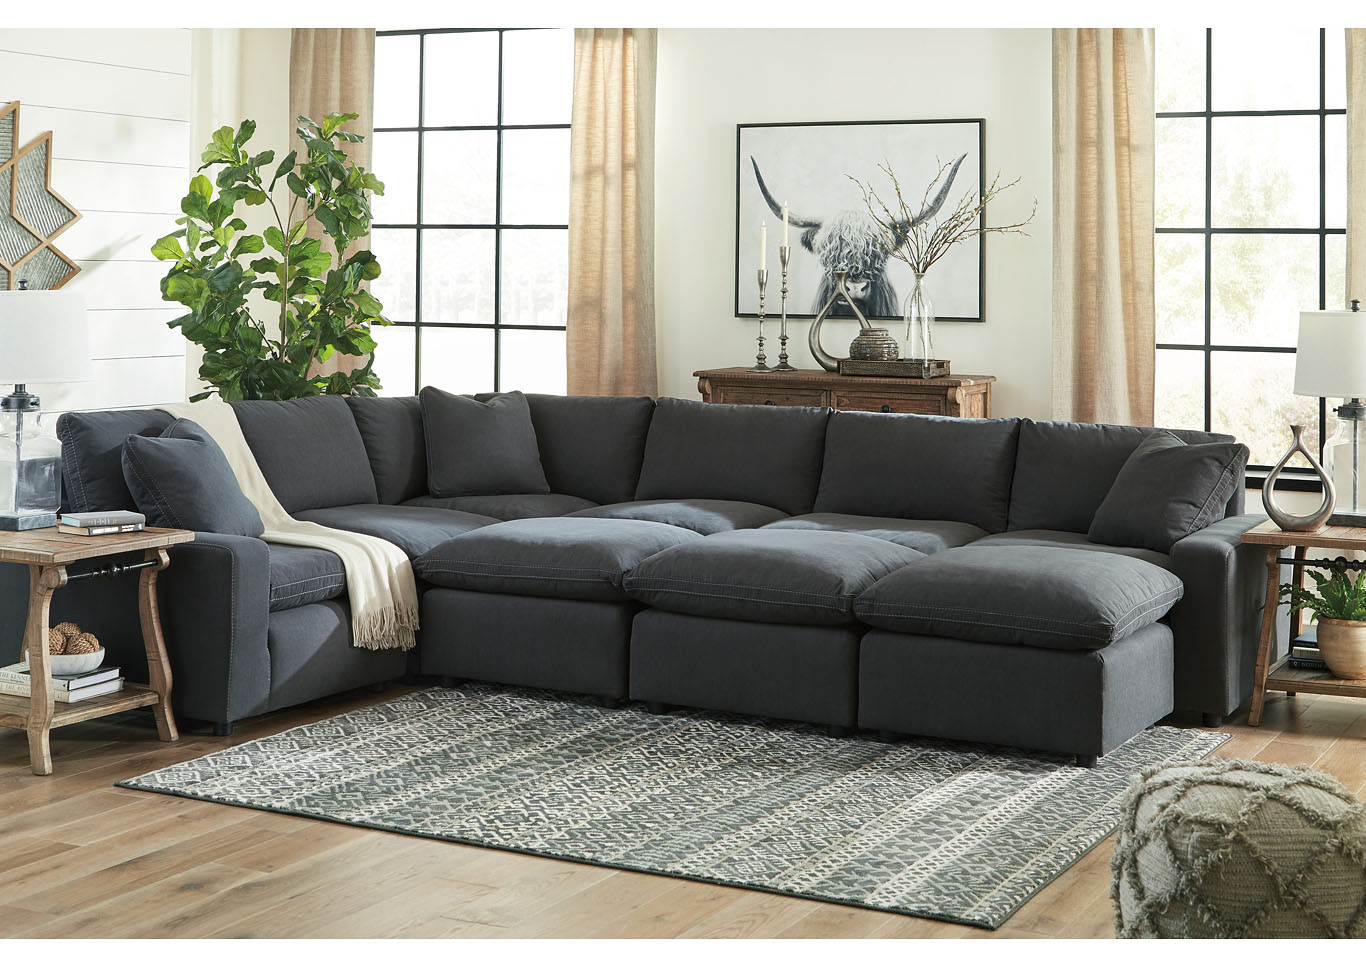 Savesto Charcoal Oversized Accent Ottoman,Signature Design By Ashley